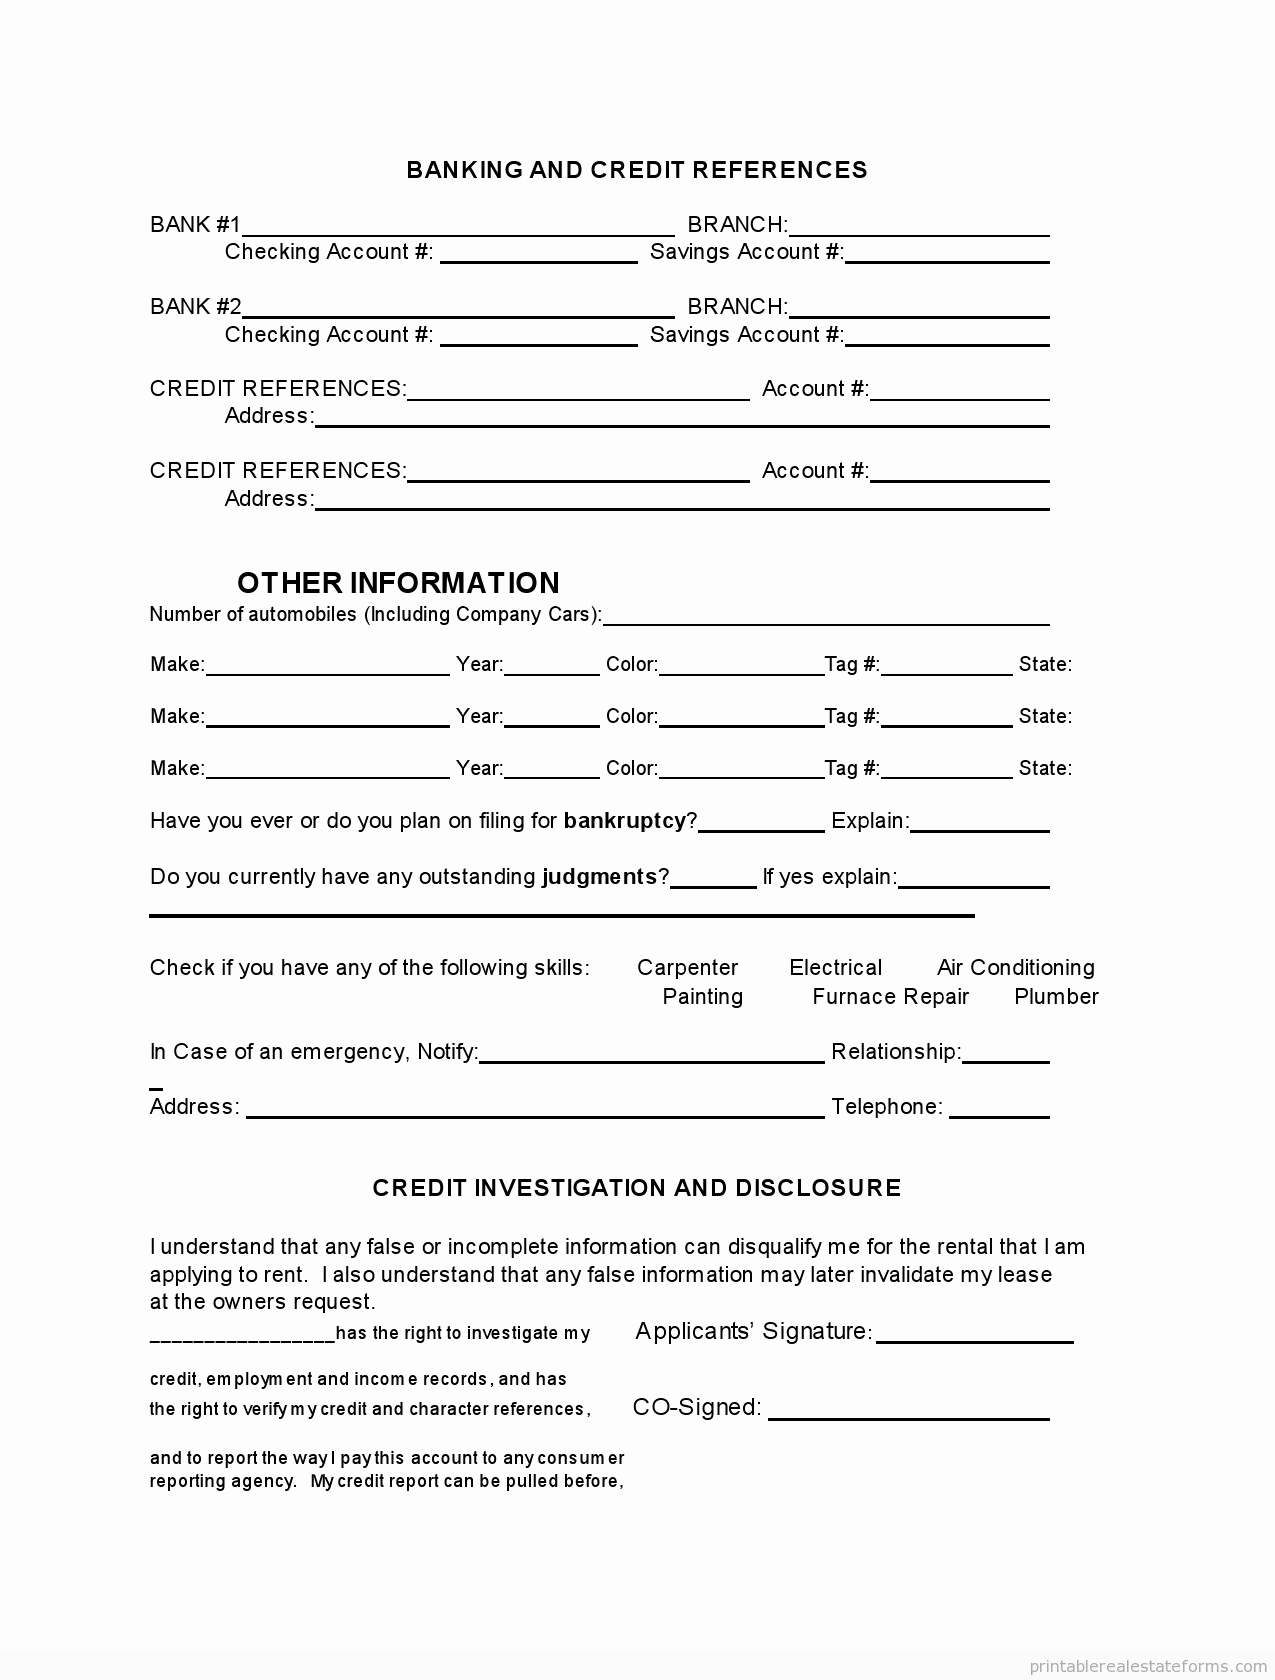 Free Rental Application Form Template Unique Rental Application Form California New Standard Rental Agreement